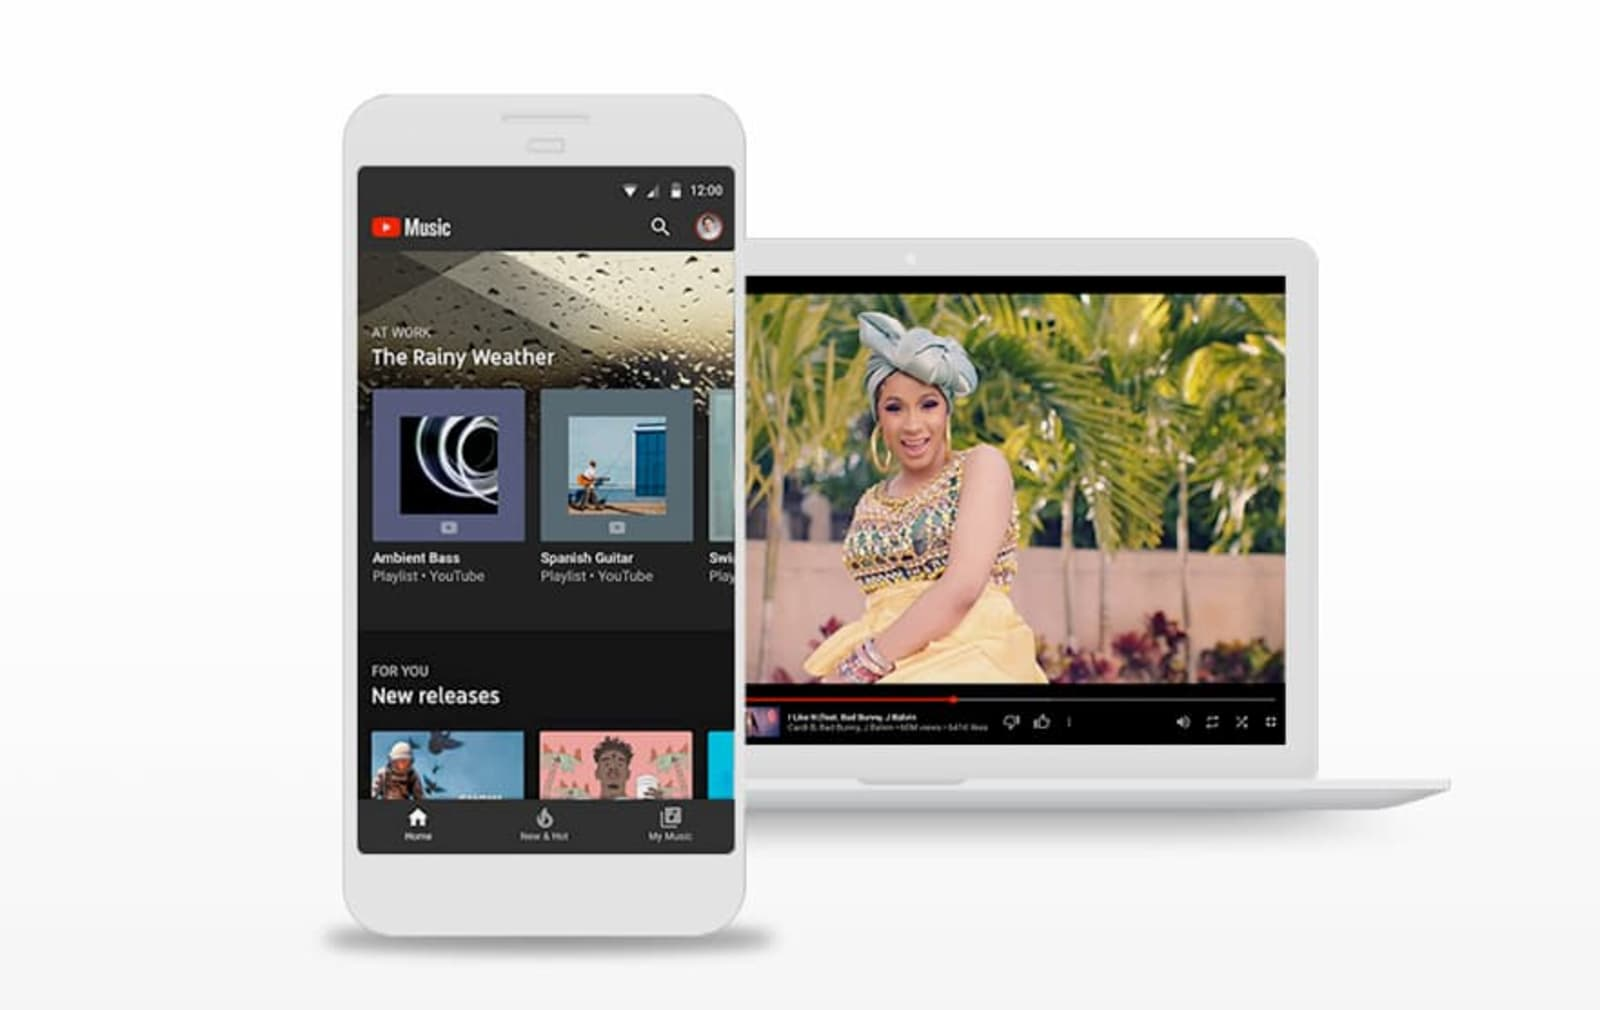 YouTube Music adds seamless switching between audio and videos